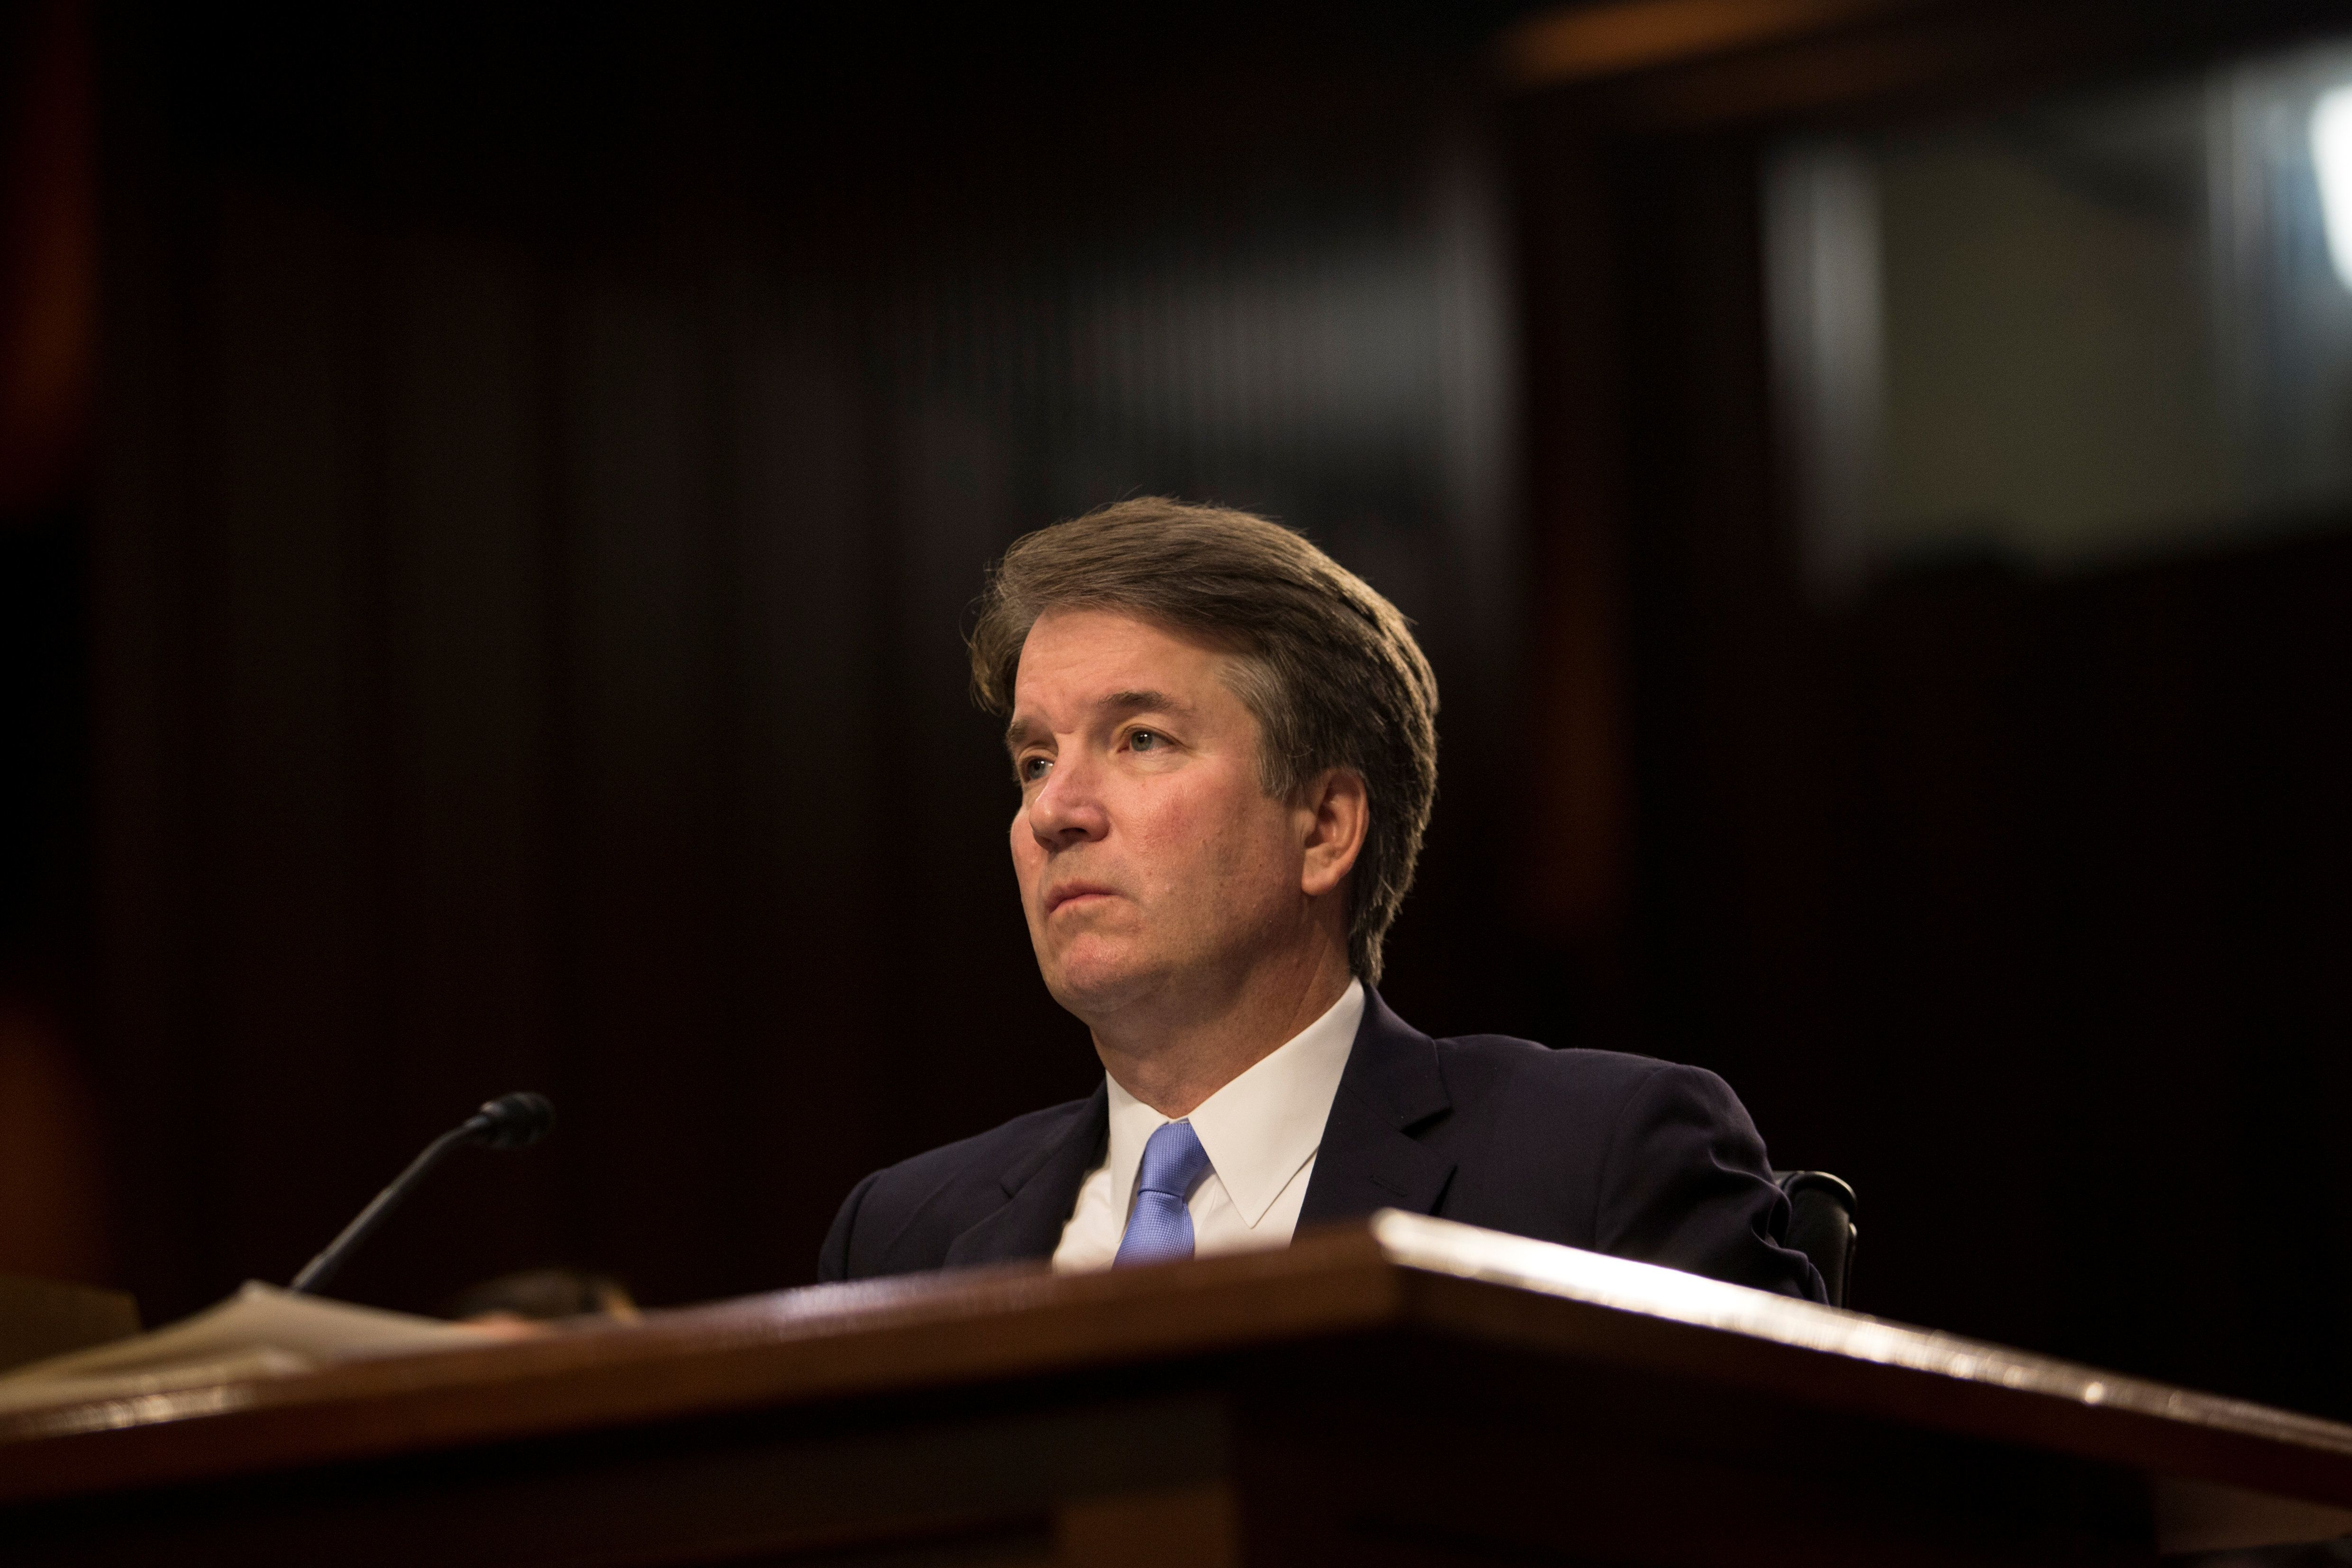 huffingtonpost.com - Nick Visser - New Yorker Bombshell: Second Woman Accuses Kavanaugh Of Sexual Misconduct